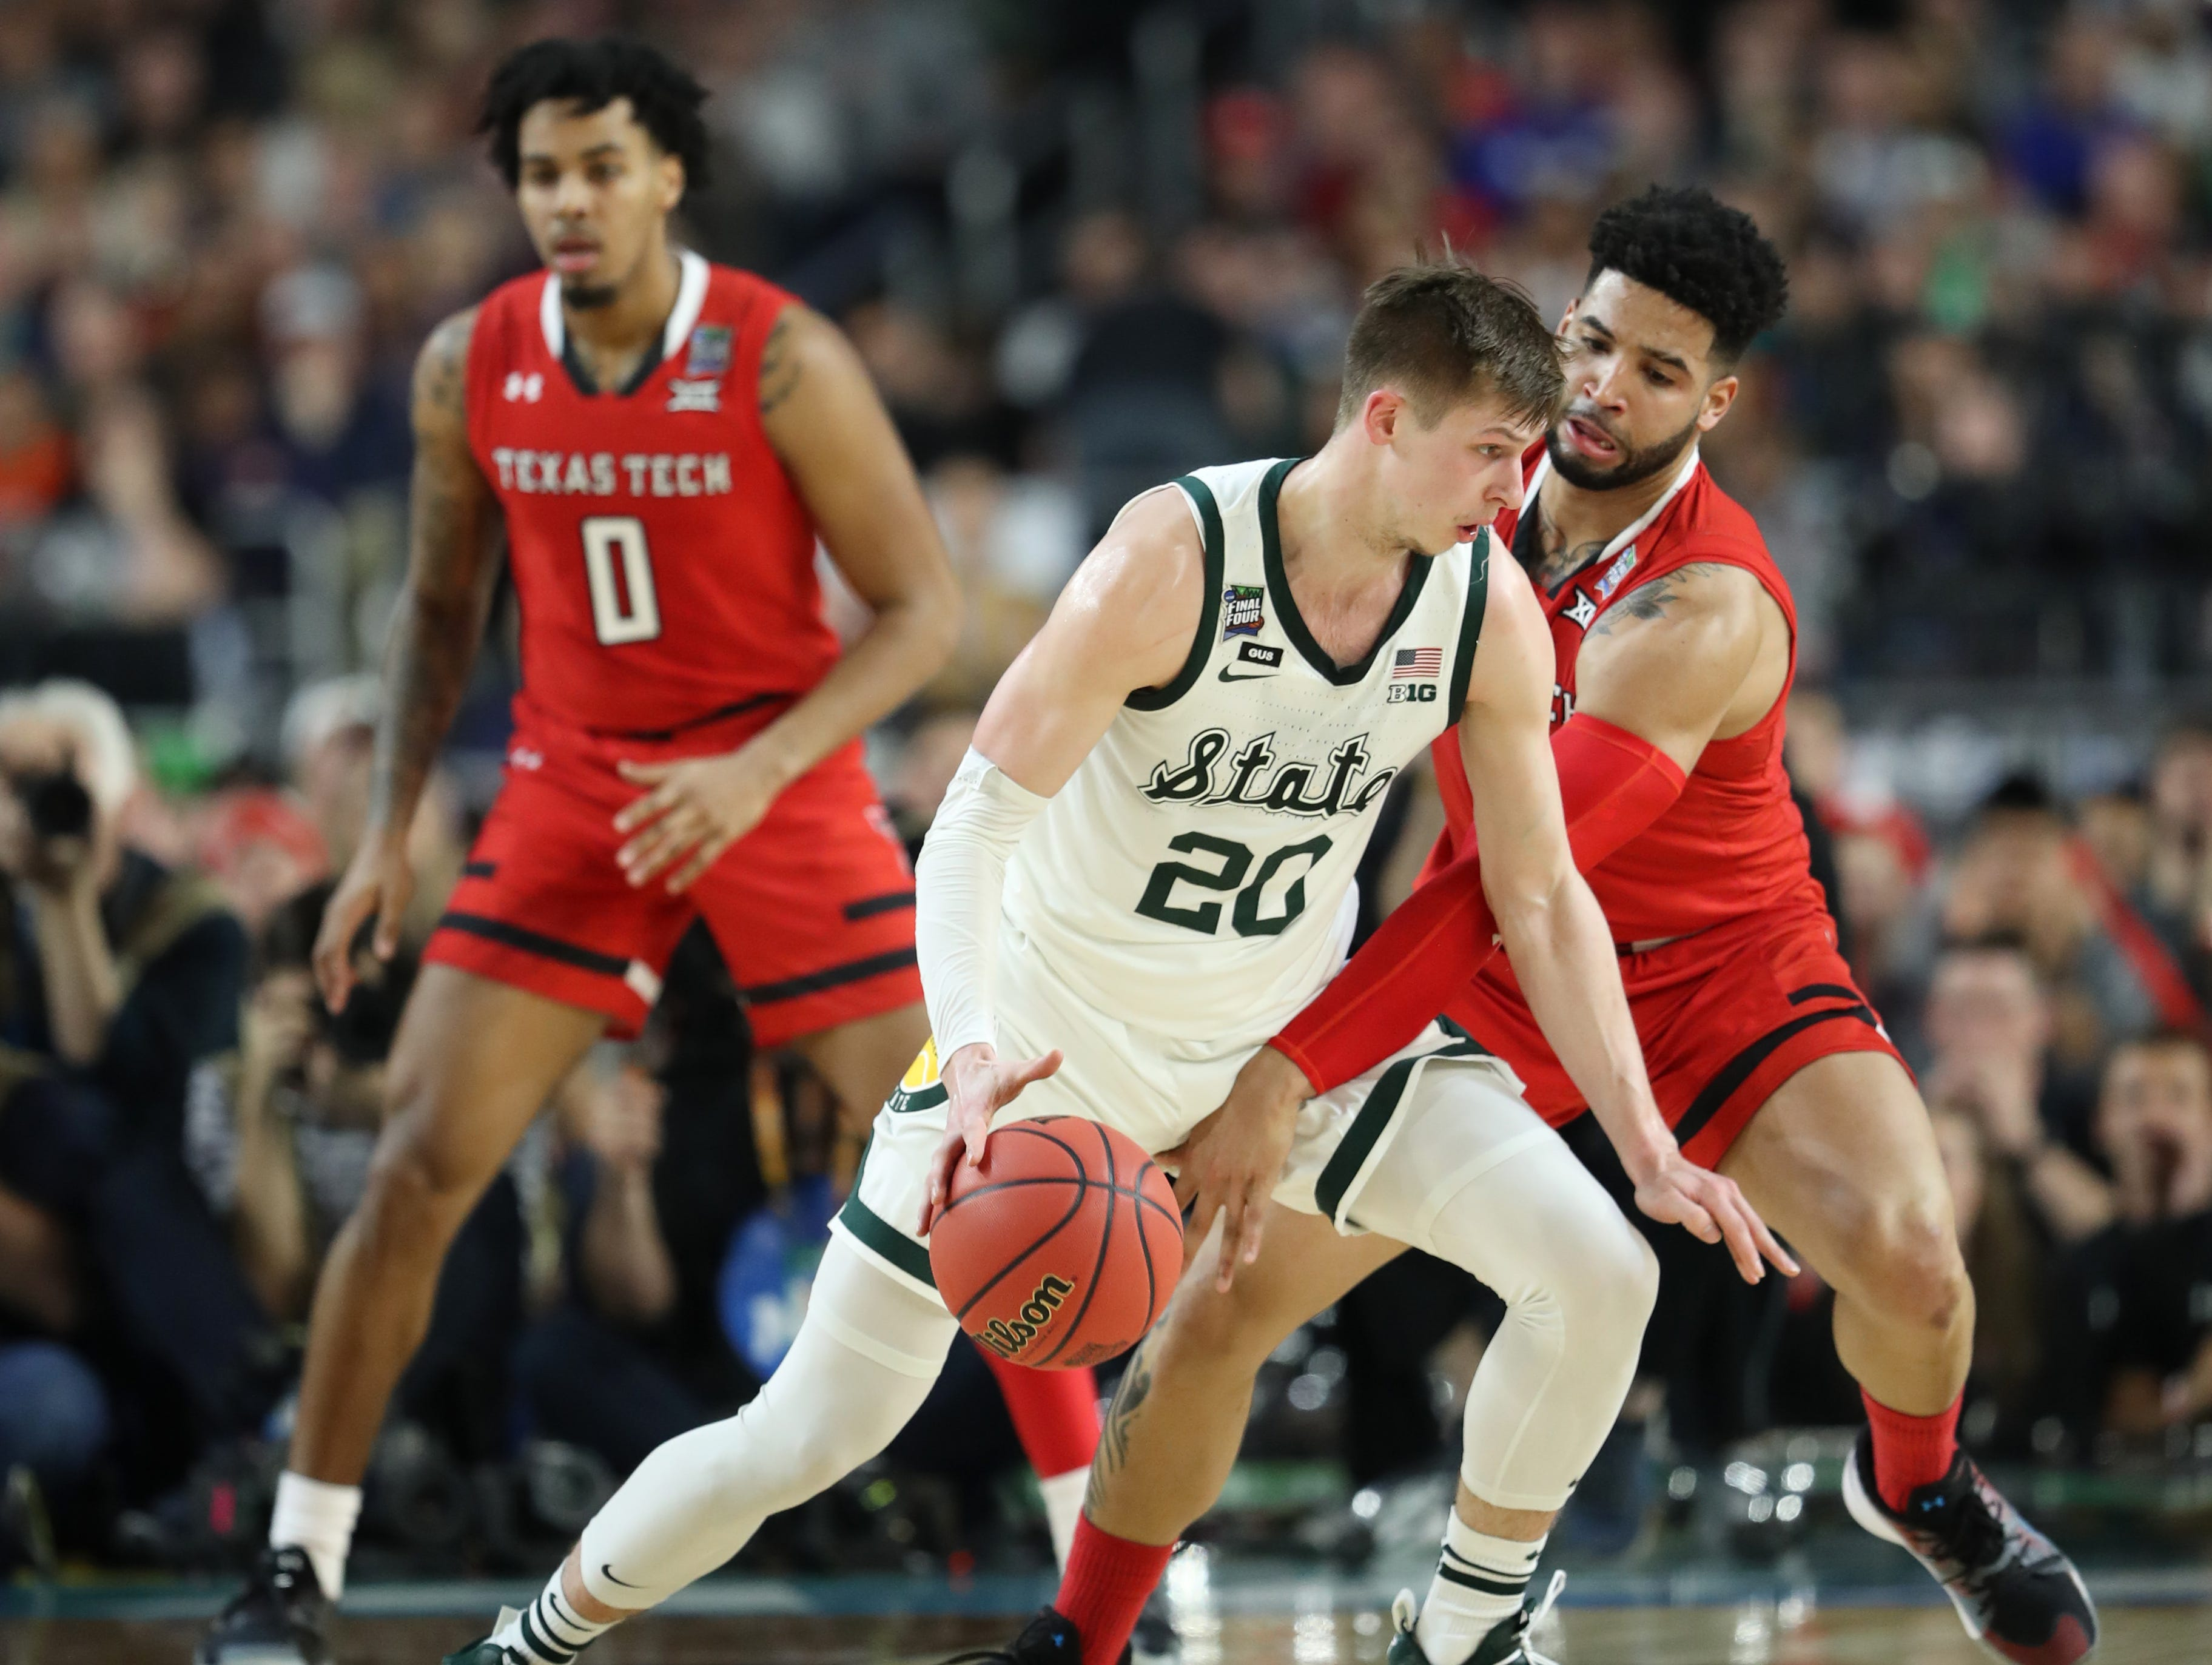 Michigan State guard Matt McQuaid (20) attempts to move the ball around Texas Tech guard Brandone Francis (1) during the first half of the Spartan's Final Four game at U.S. Bank Stadium in Minneapolis, Minnesota on Saturday, April 06, 2019.